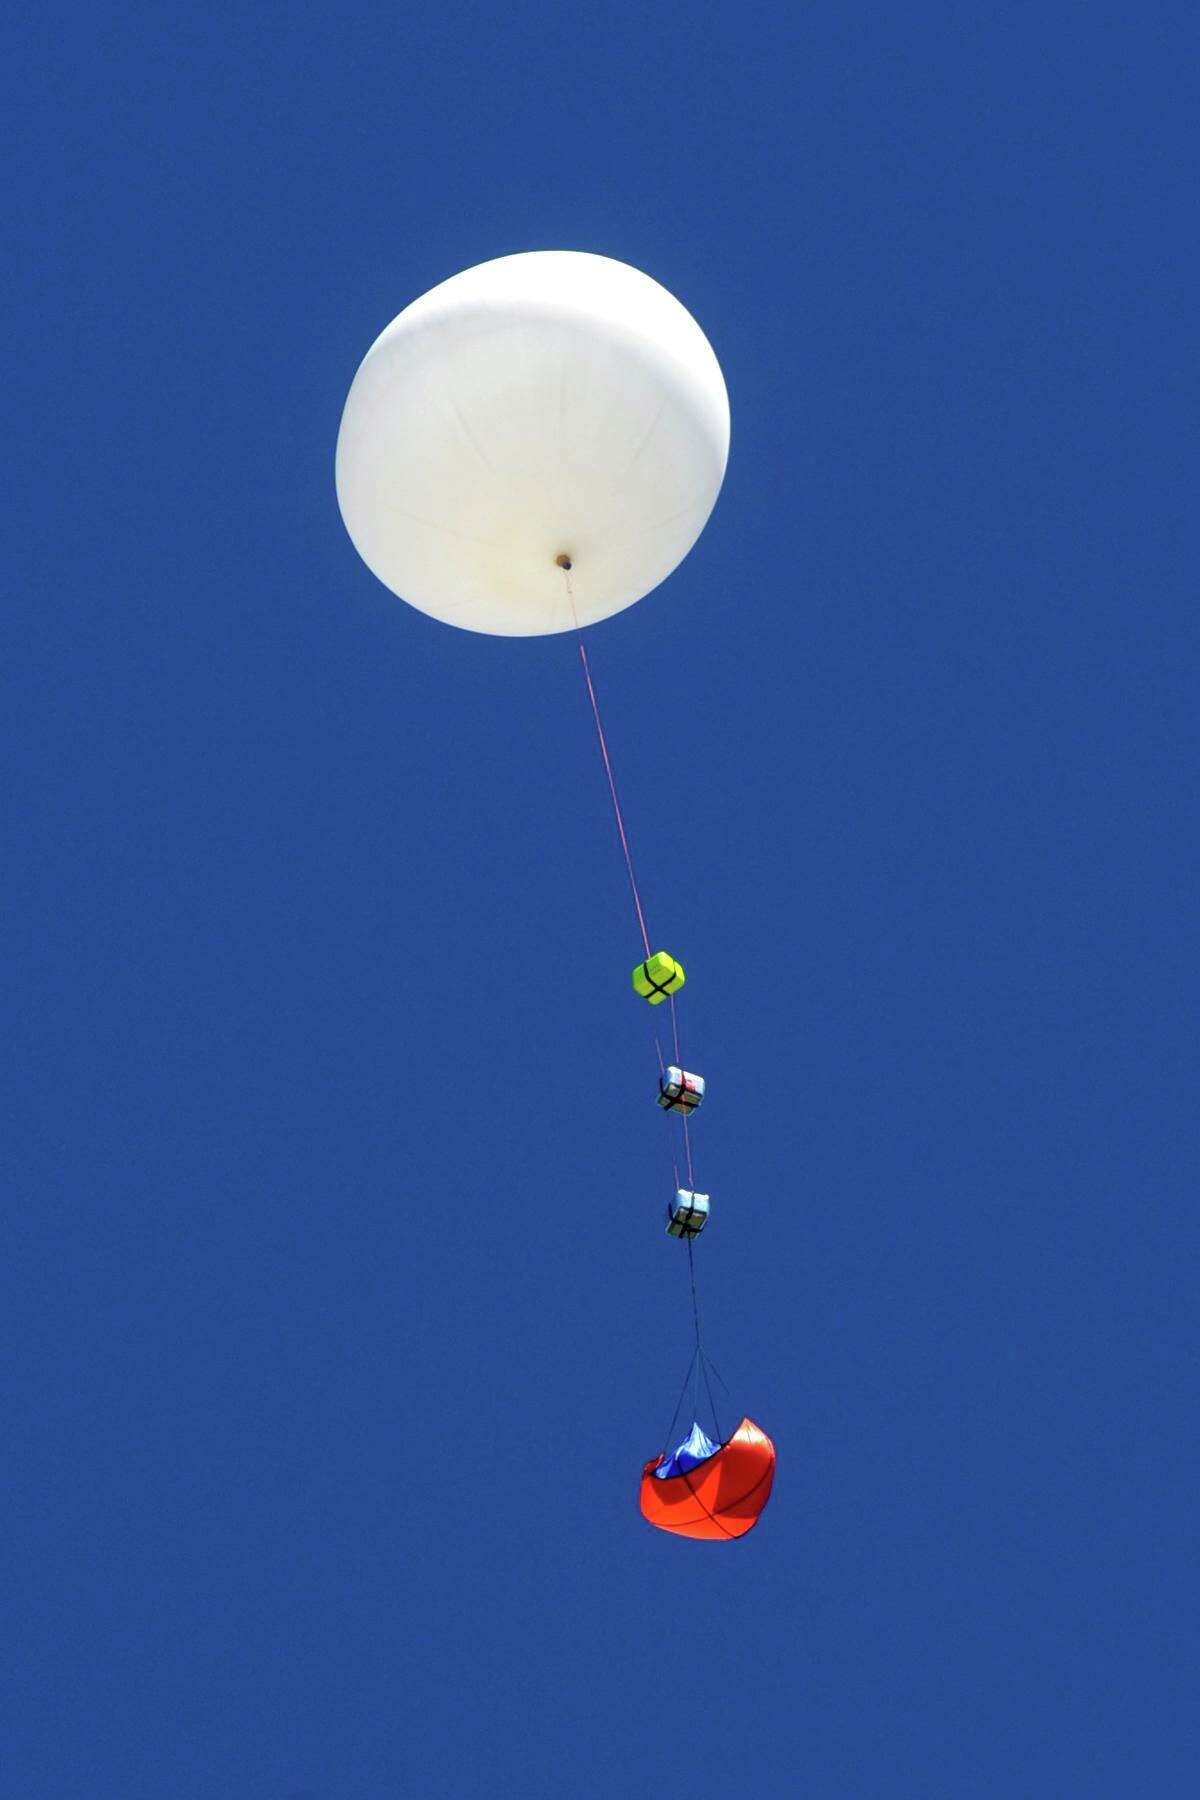 Faculty and students released a helium filled weather balloon from the roof of Fairfield Wheeler Interdistrict Multi-Magnet School, in Bridgeport, Conn. June 24, 2021. Carrying a payload of small experiments, recording devices and cameras, the balloon's release marked the beginning of the school's summer STEM camp.